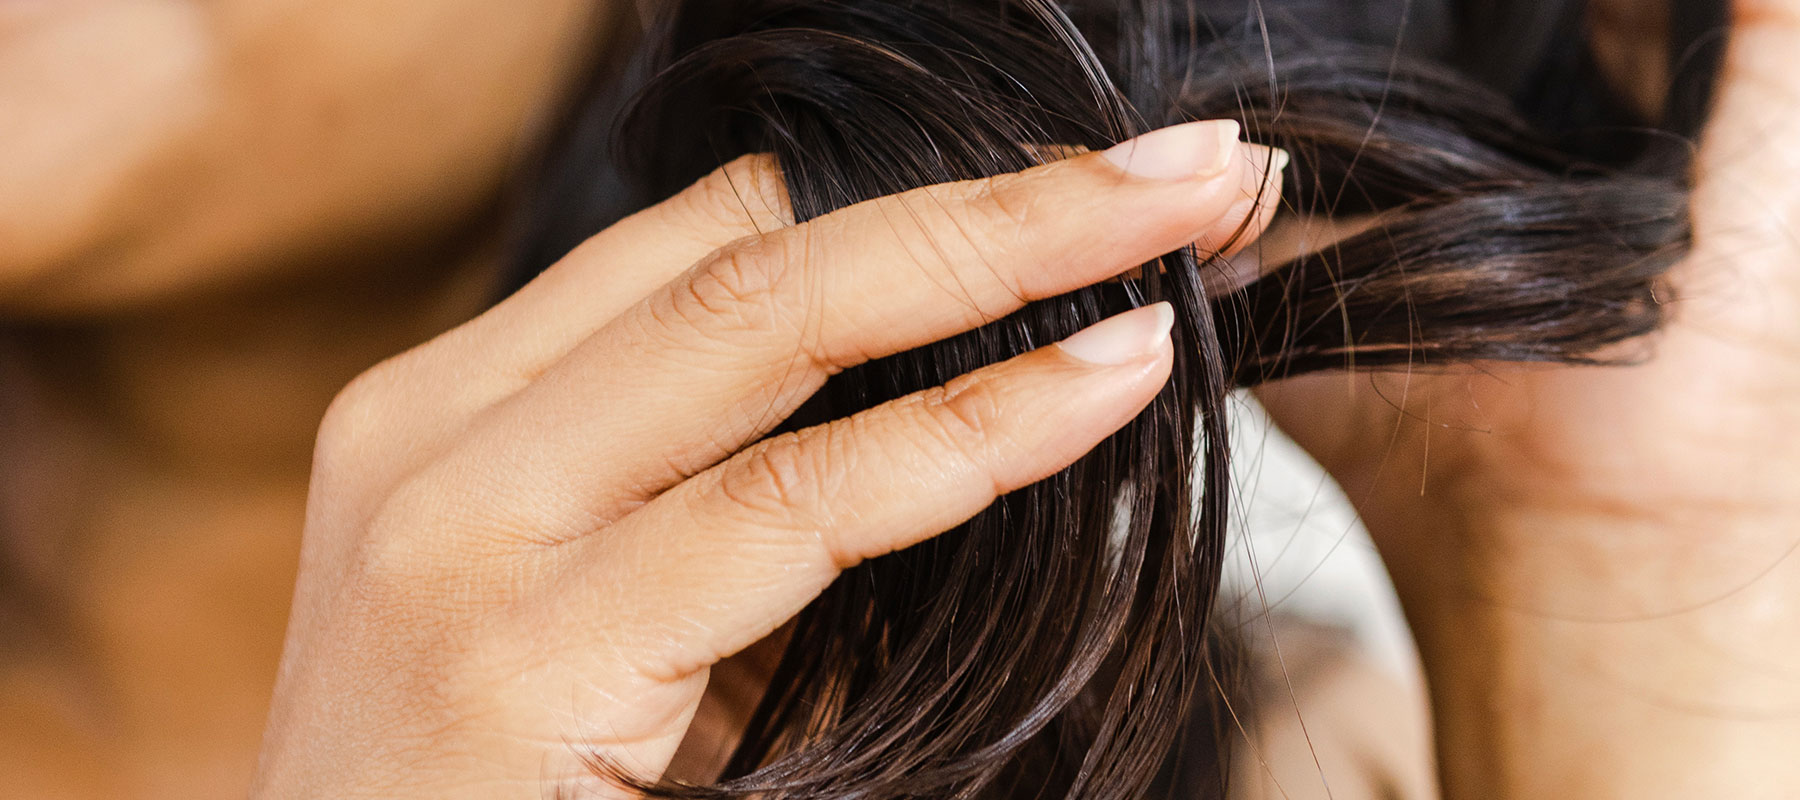 Adding a boost - Oils For Your Hair